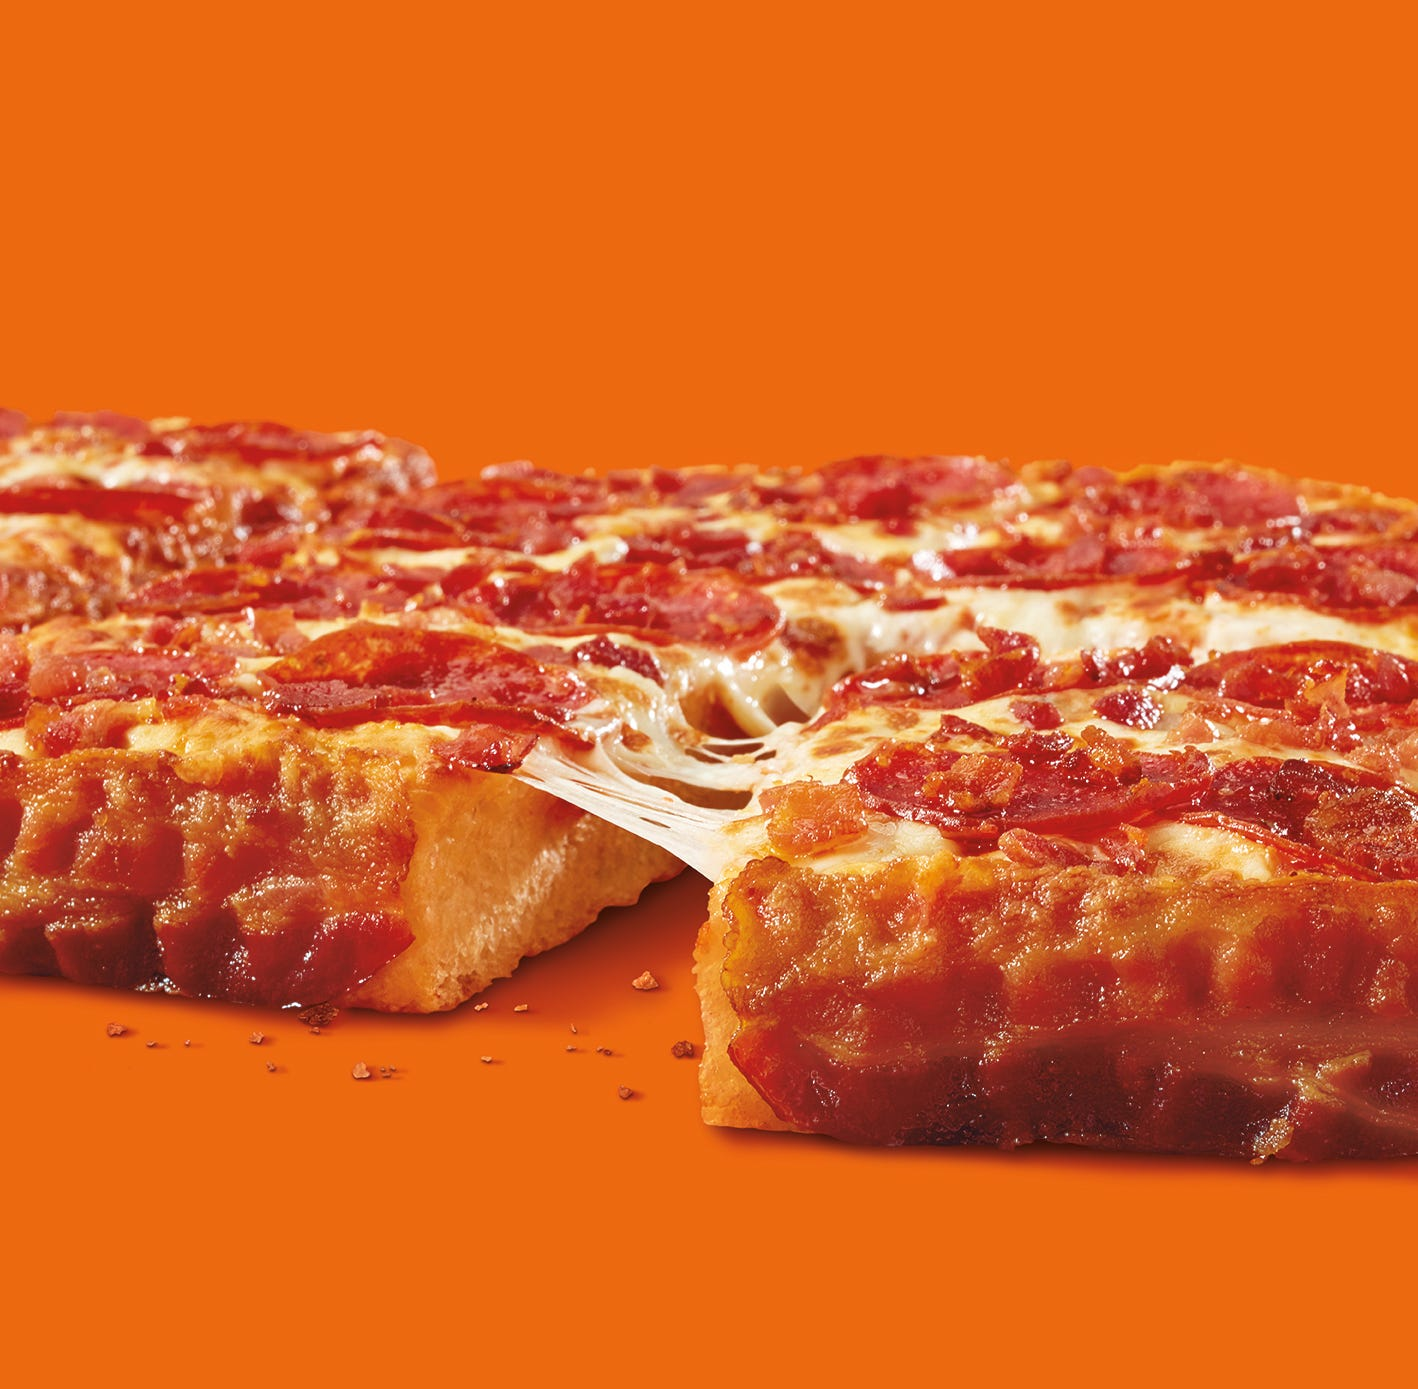 Bacon-wrapped deep-dish pizza is back at Little Caesars